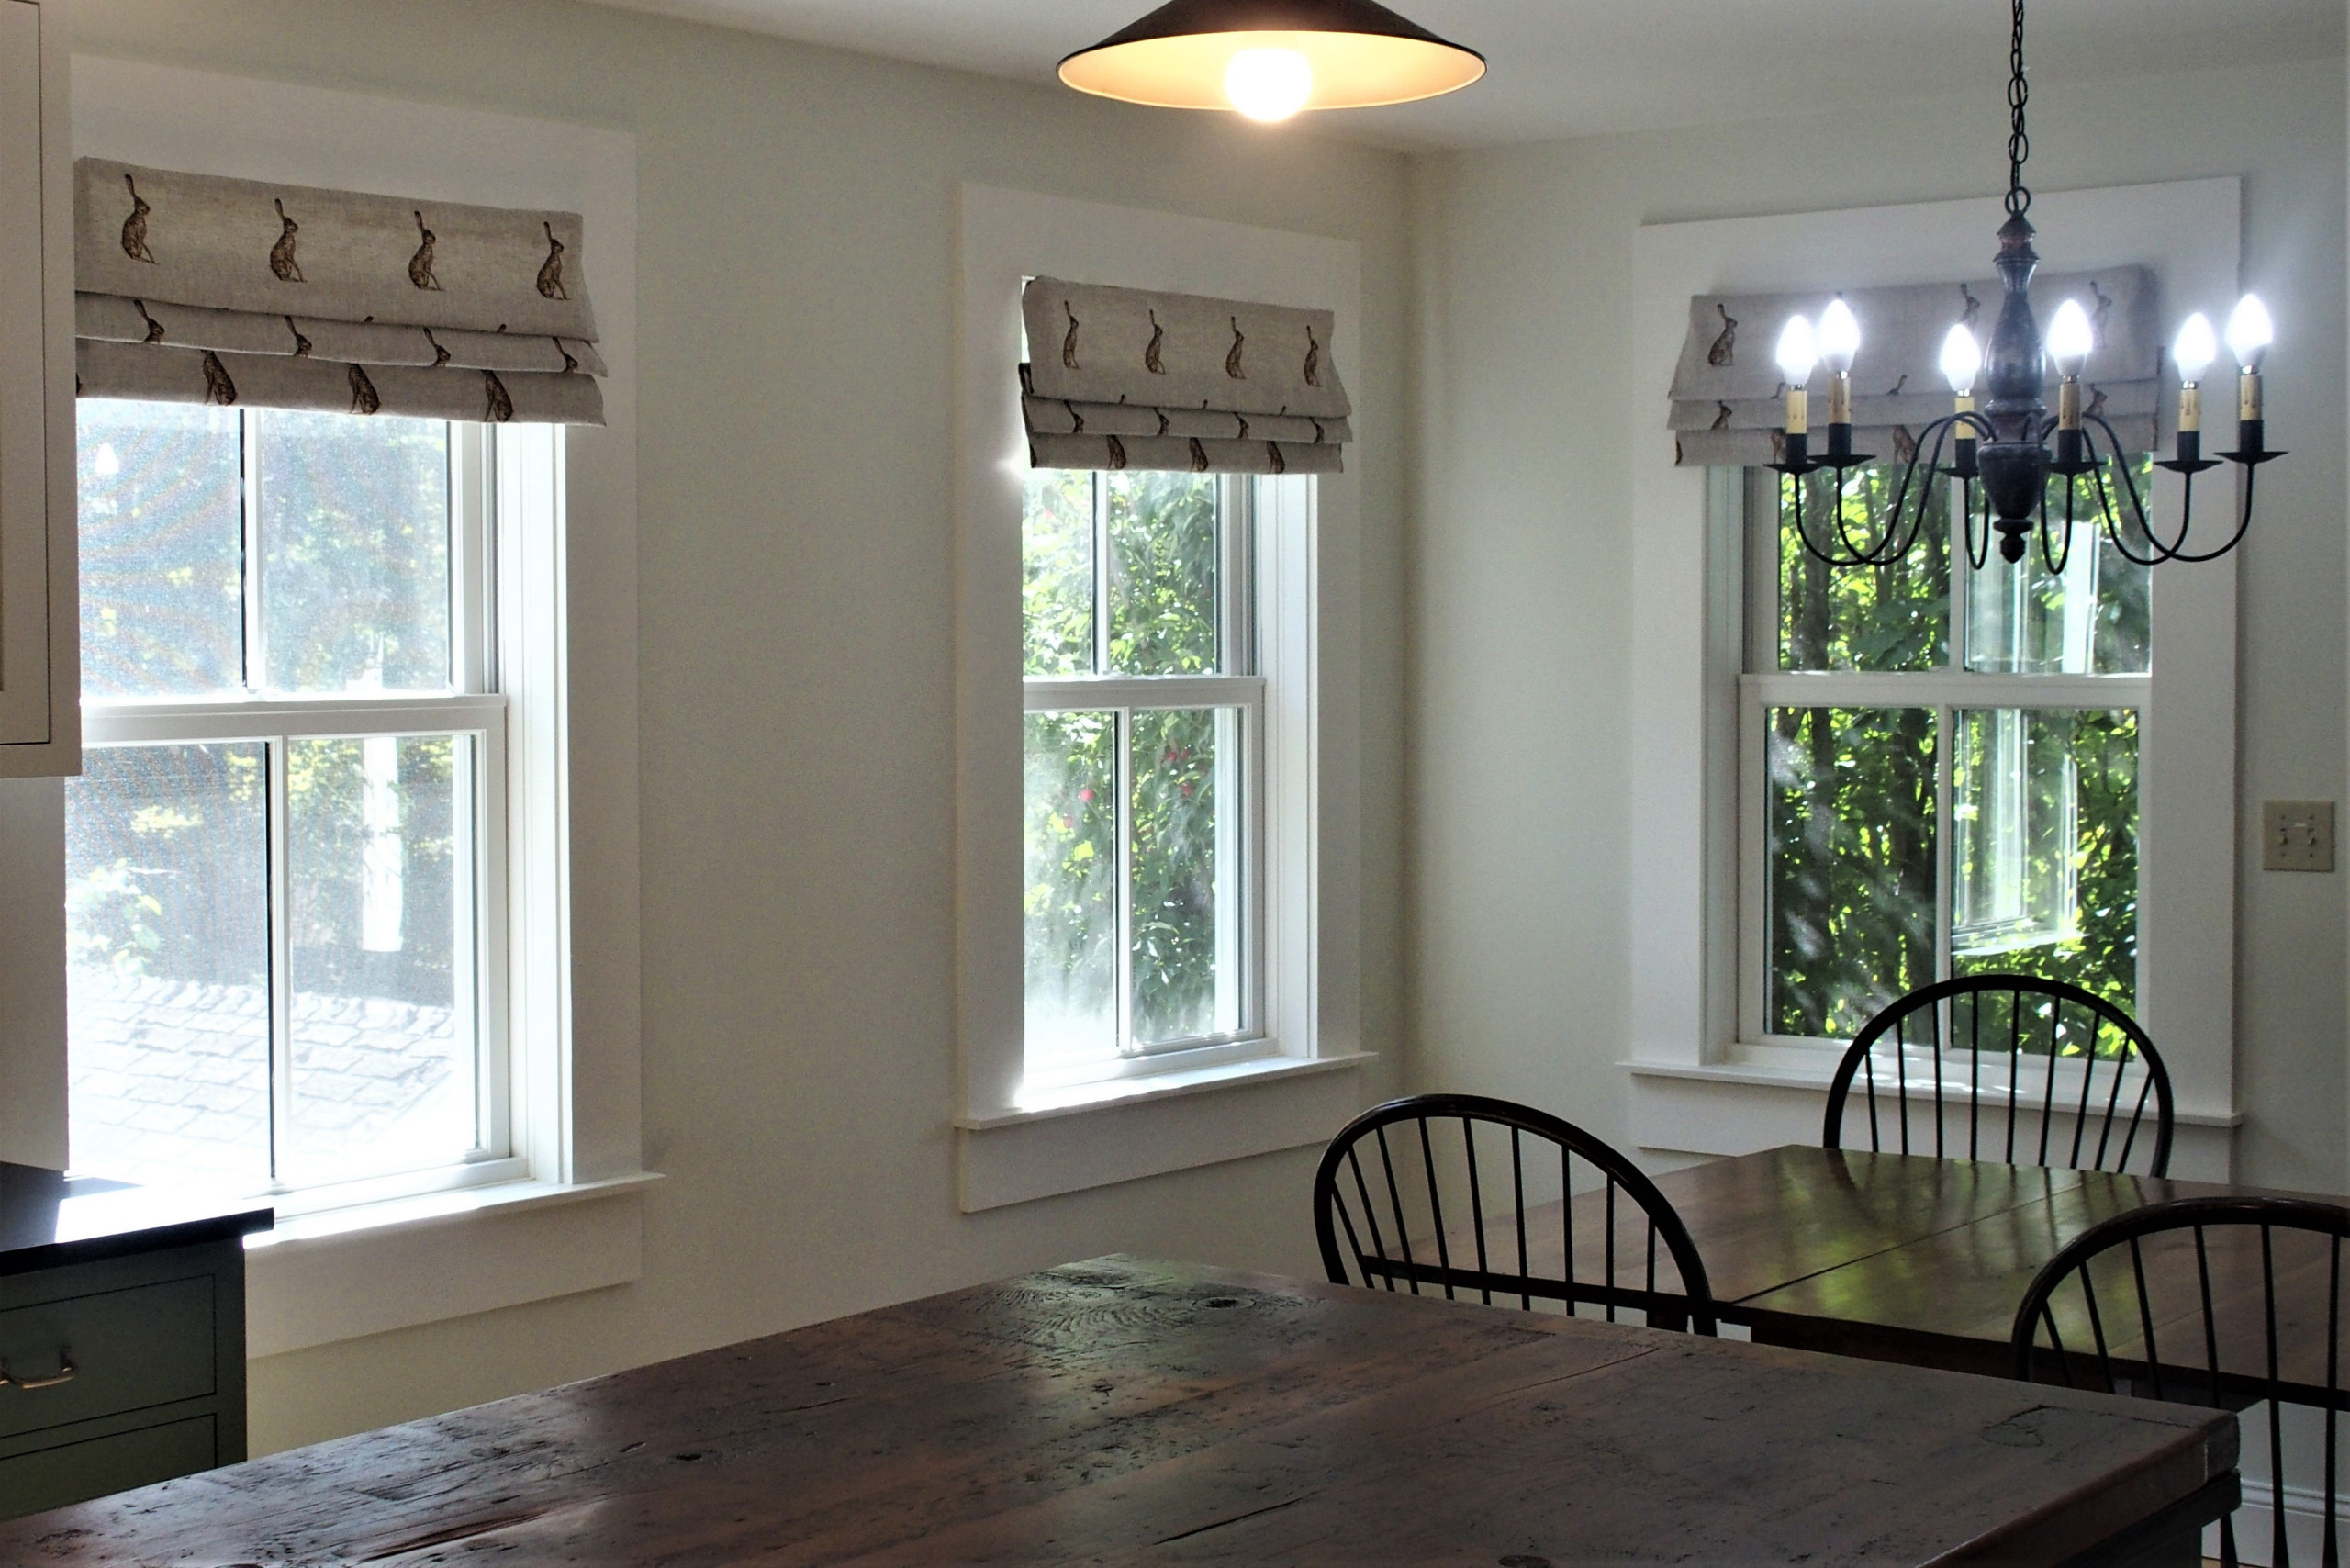 Faux Roman shades in a new kitchen